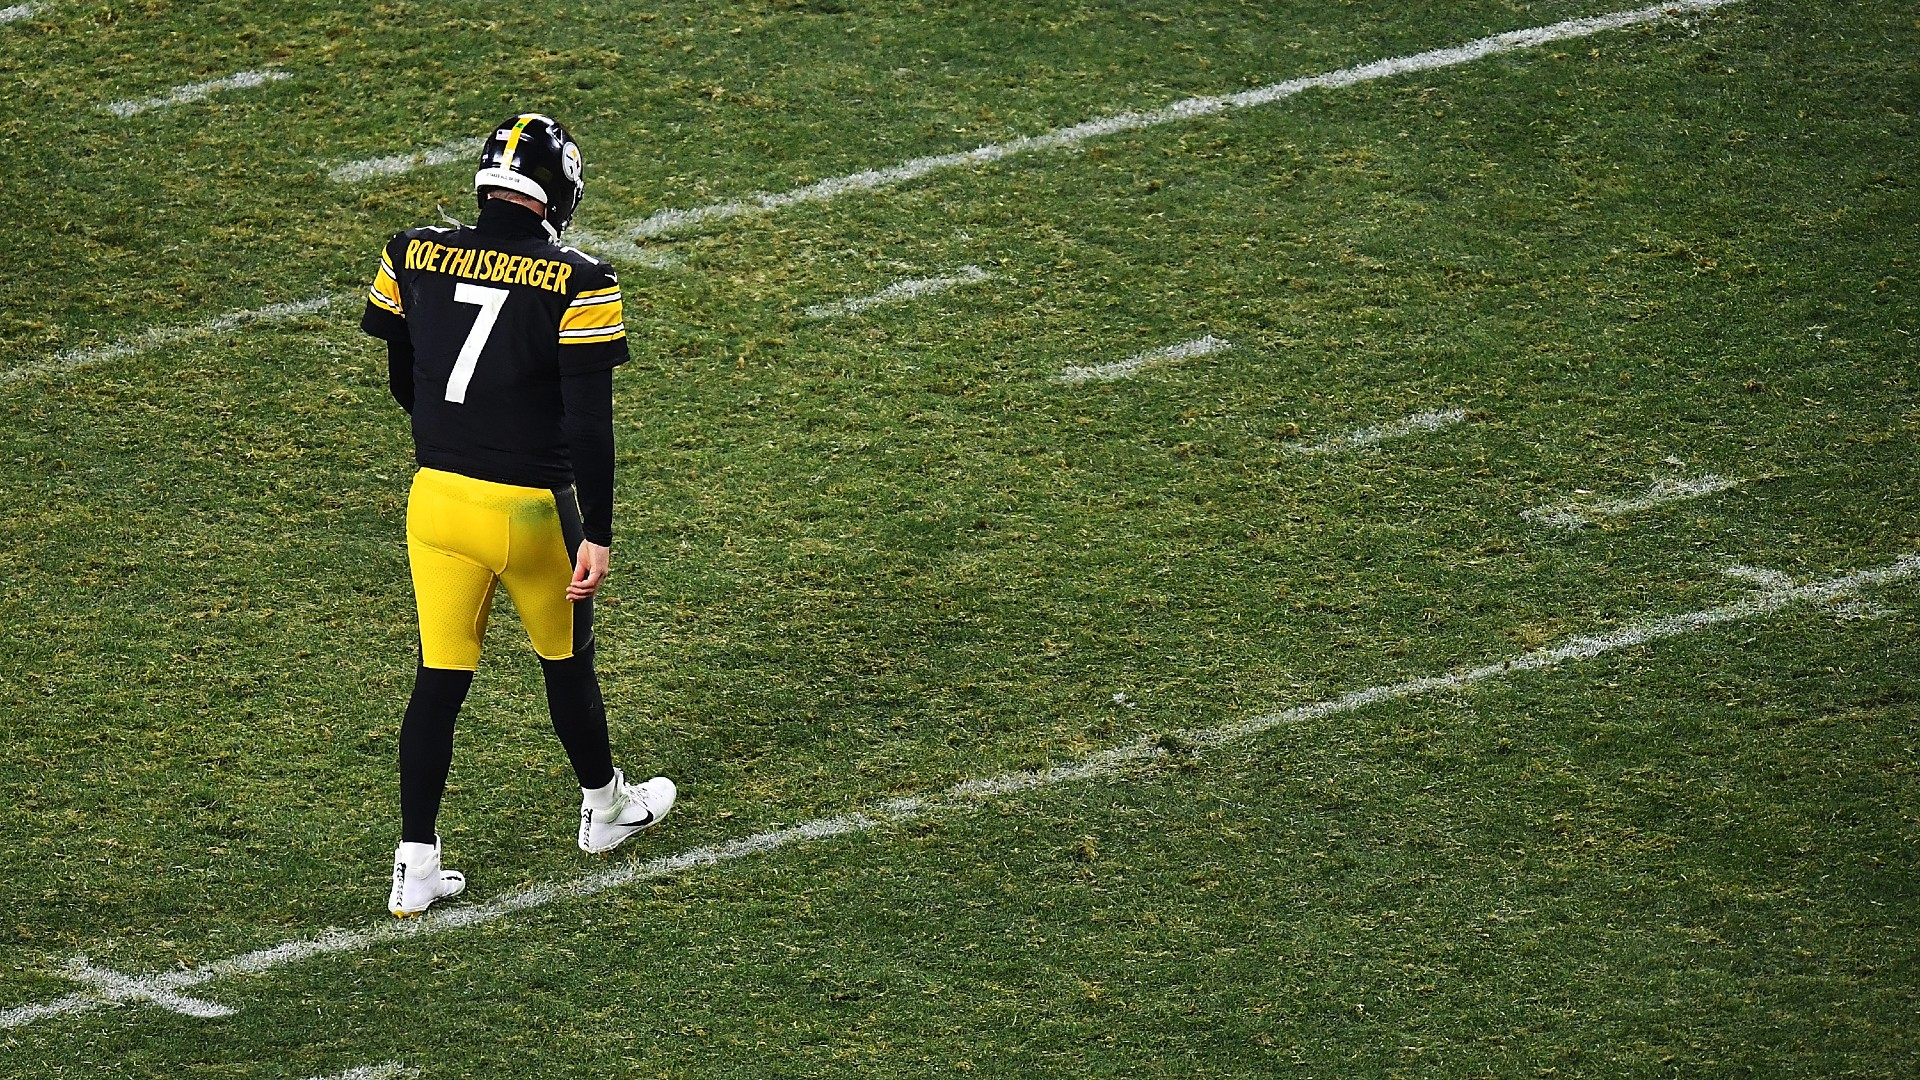 Ben Roethlisberger looks set for a swansong in Pittsburgh, but it is his support system that will be key to the Steelers' success in 2021.